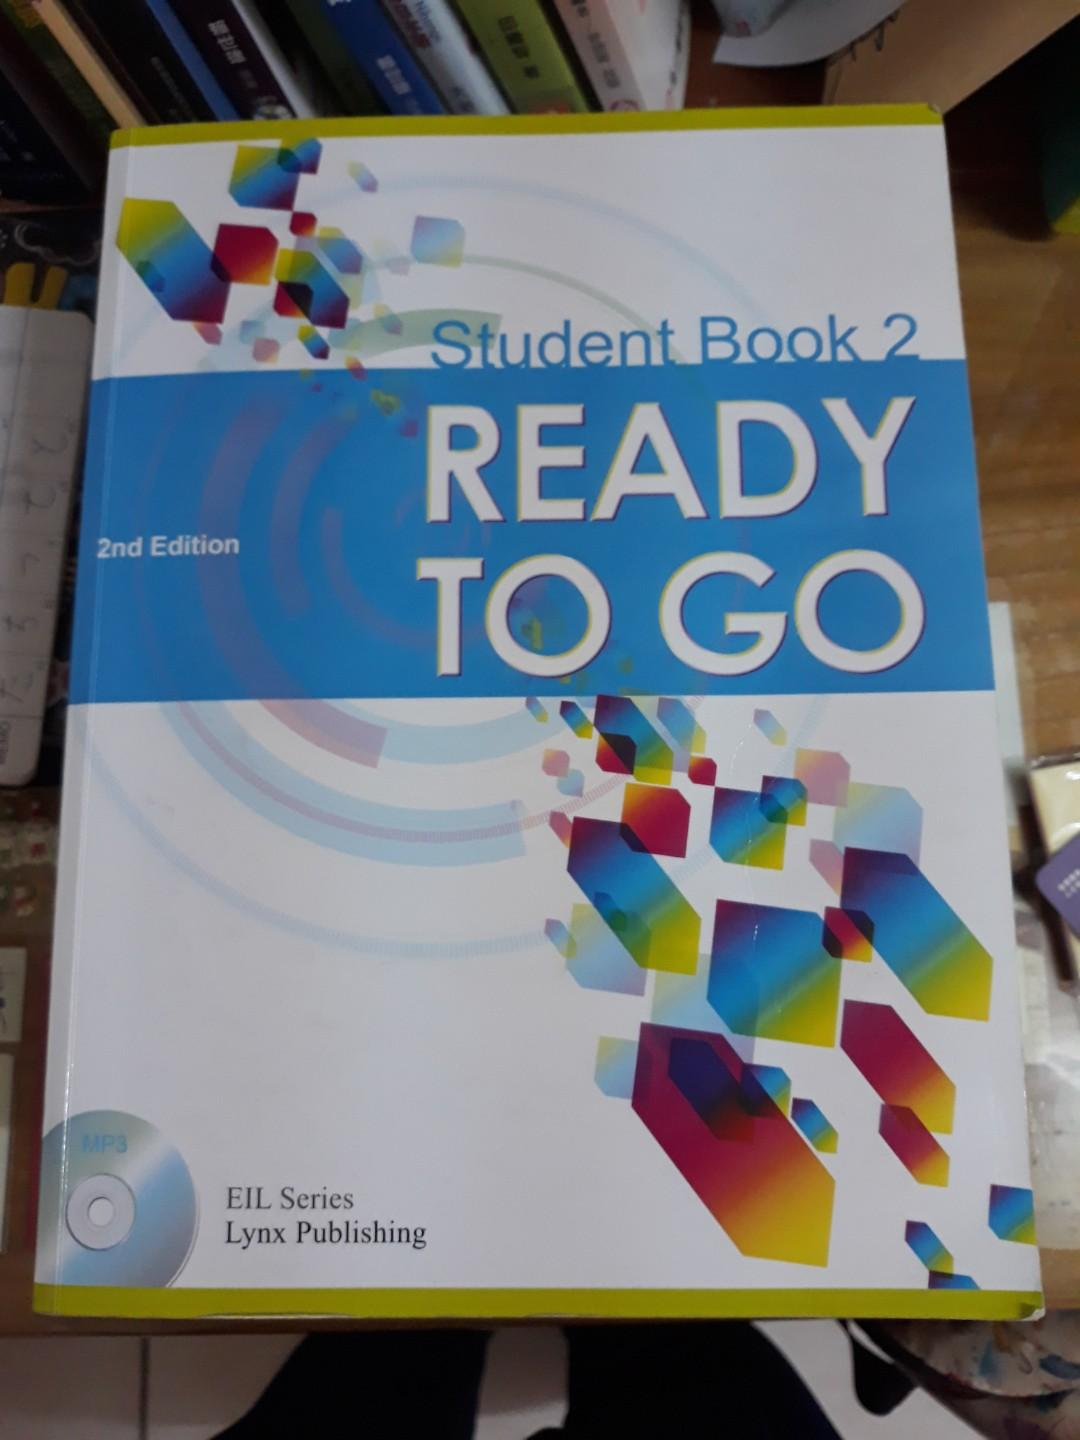 Ready to go (student book 2)